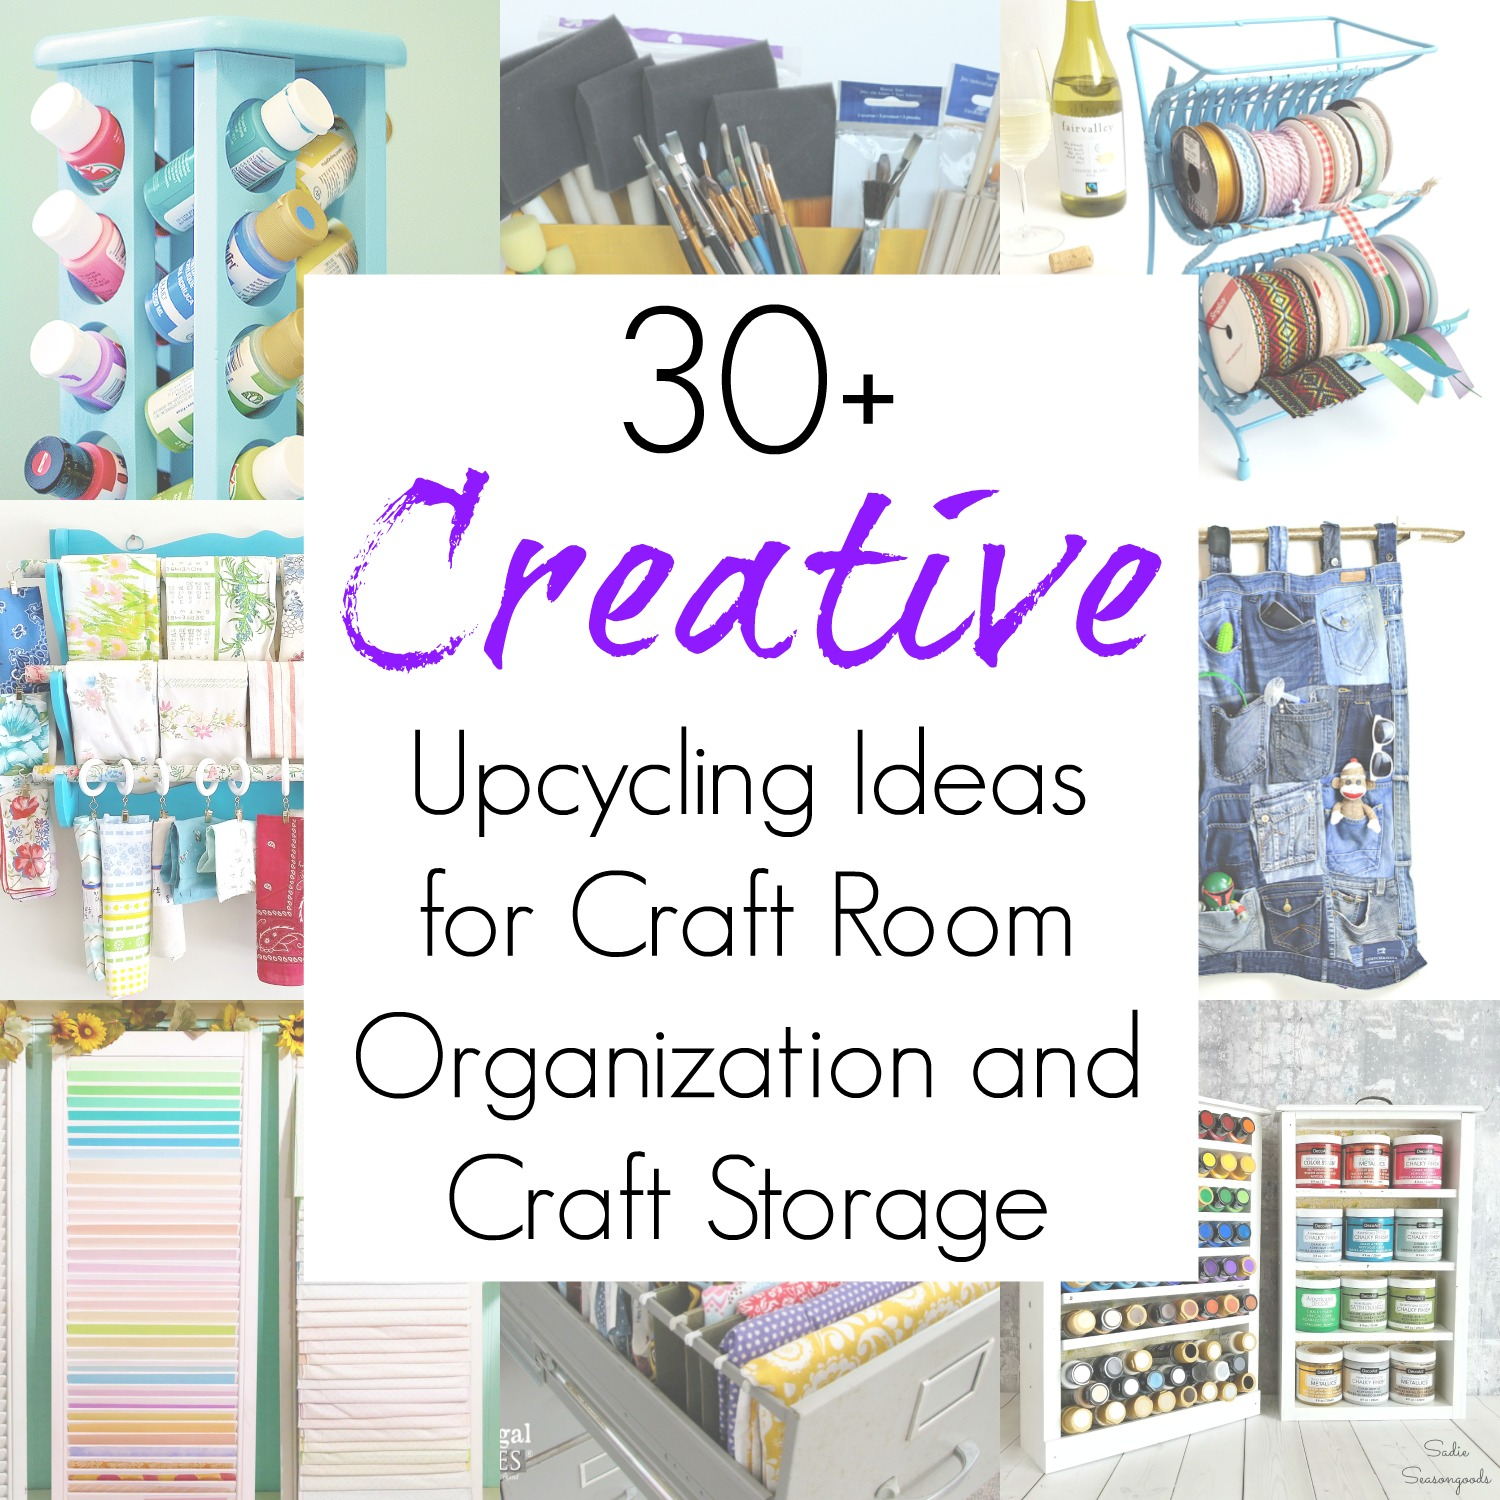 Craft Storage Ideas for Organizing Craft Supplies